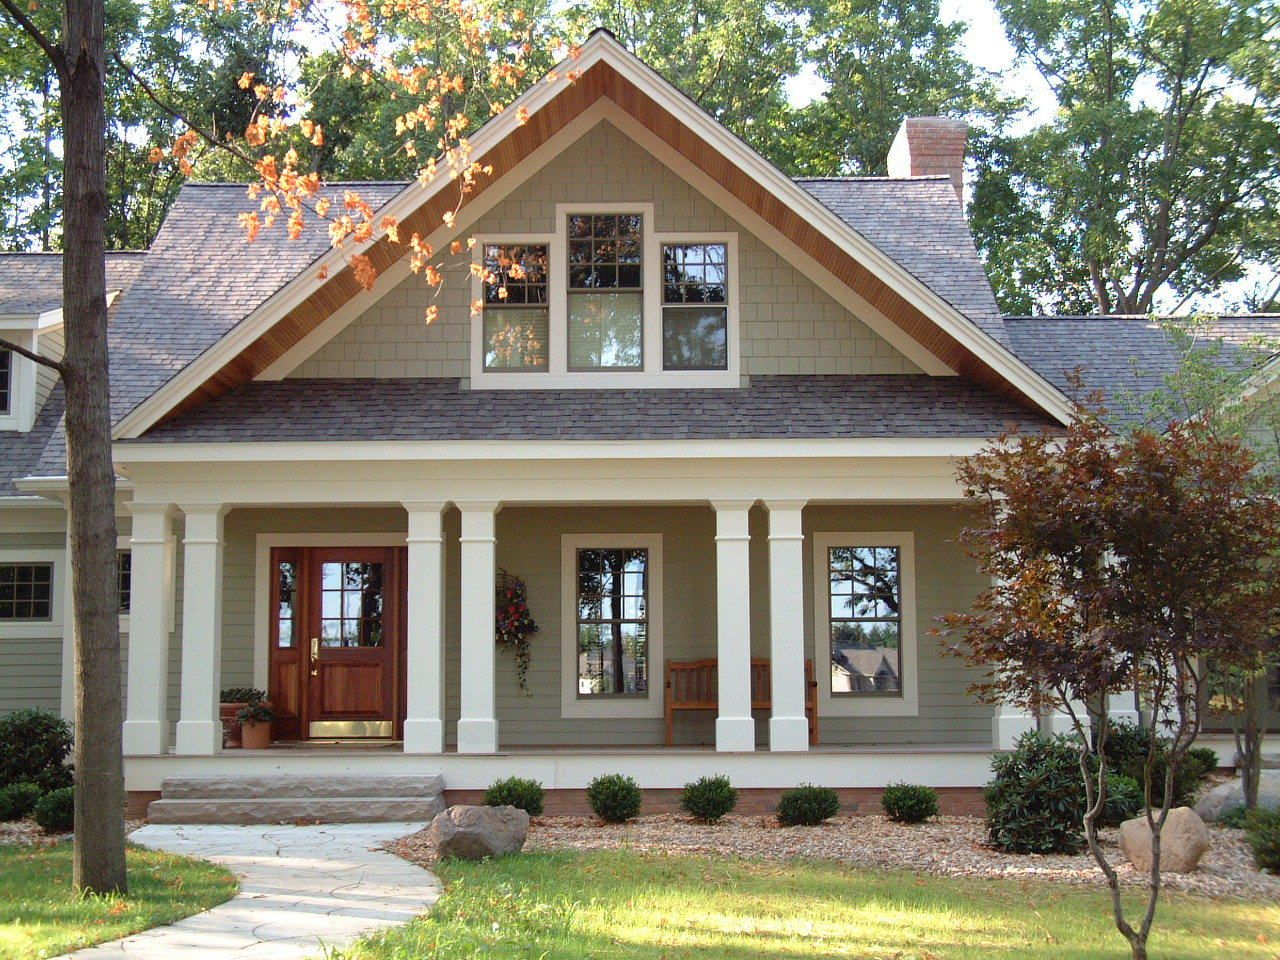 New custom home shingle style craftsman style house plan for Average cost to build a craftsman style home